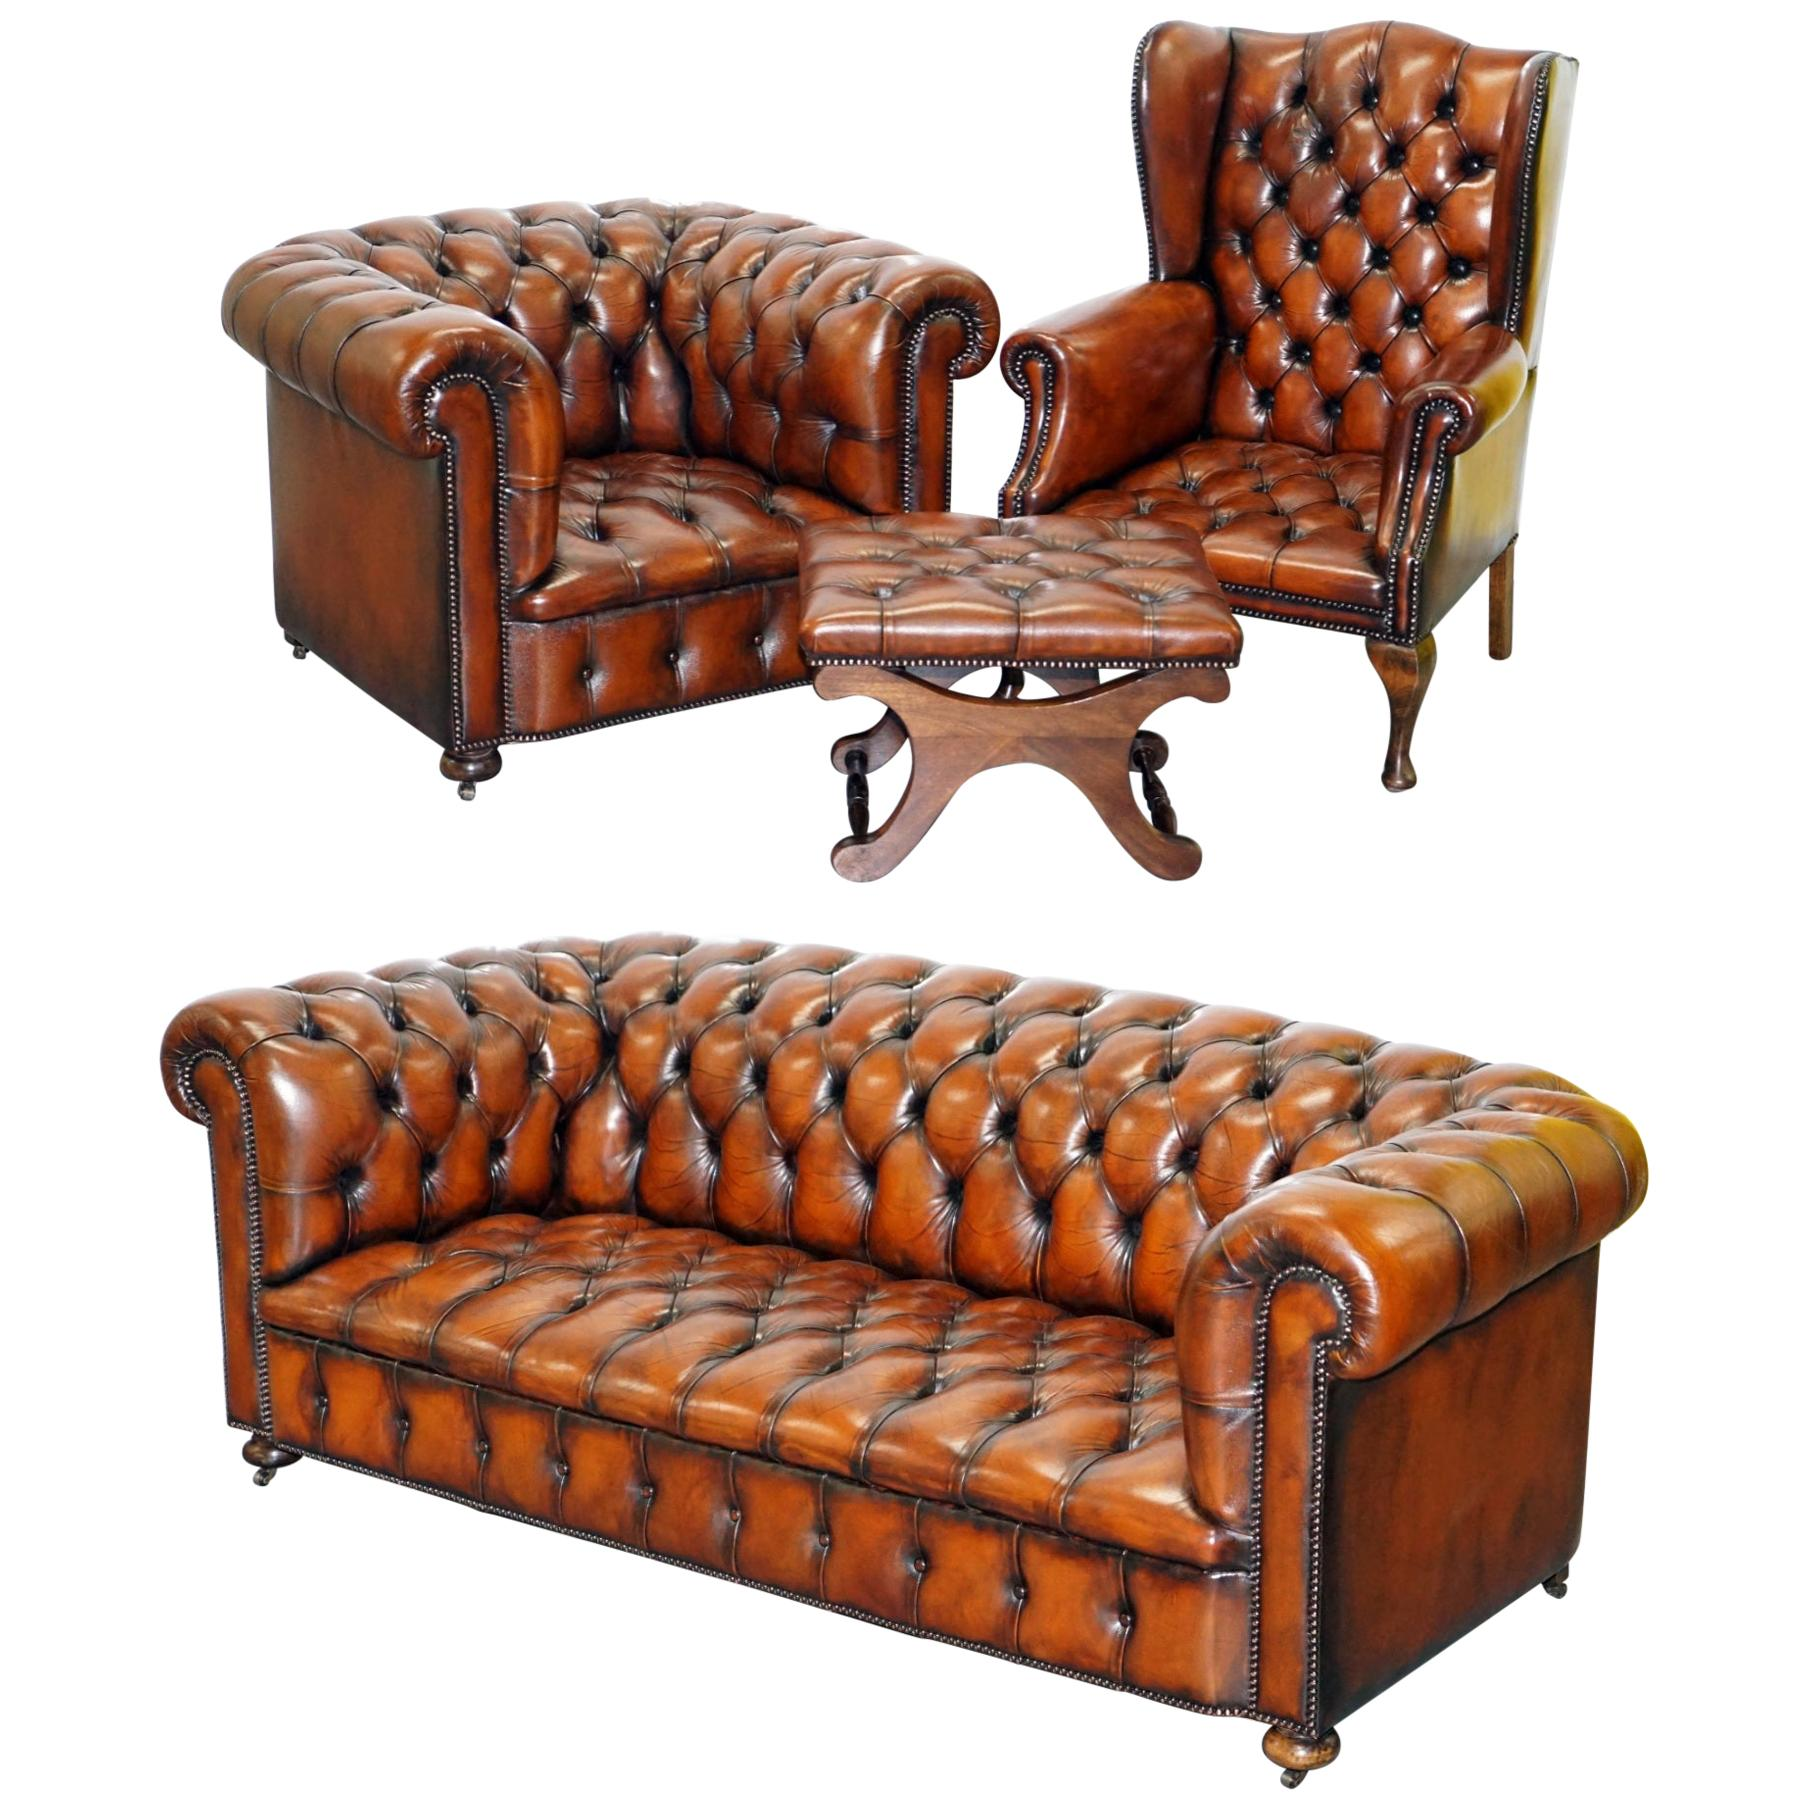 Restored Brown Leather Chesterfield Library Club Wingback Armchair & Sofa Suite